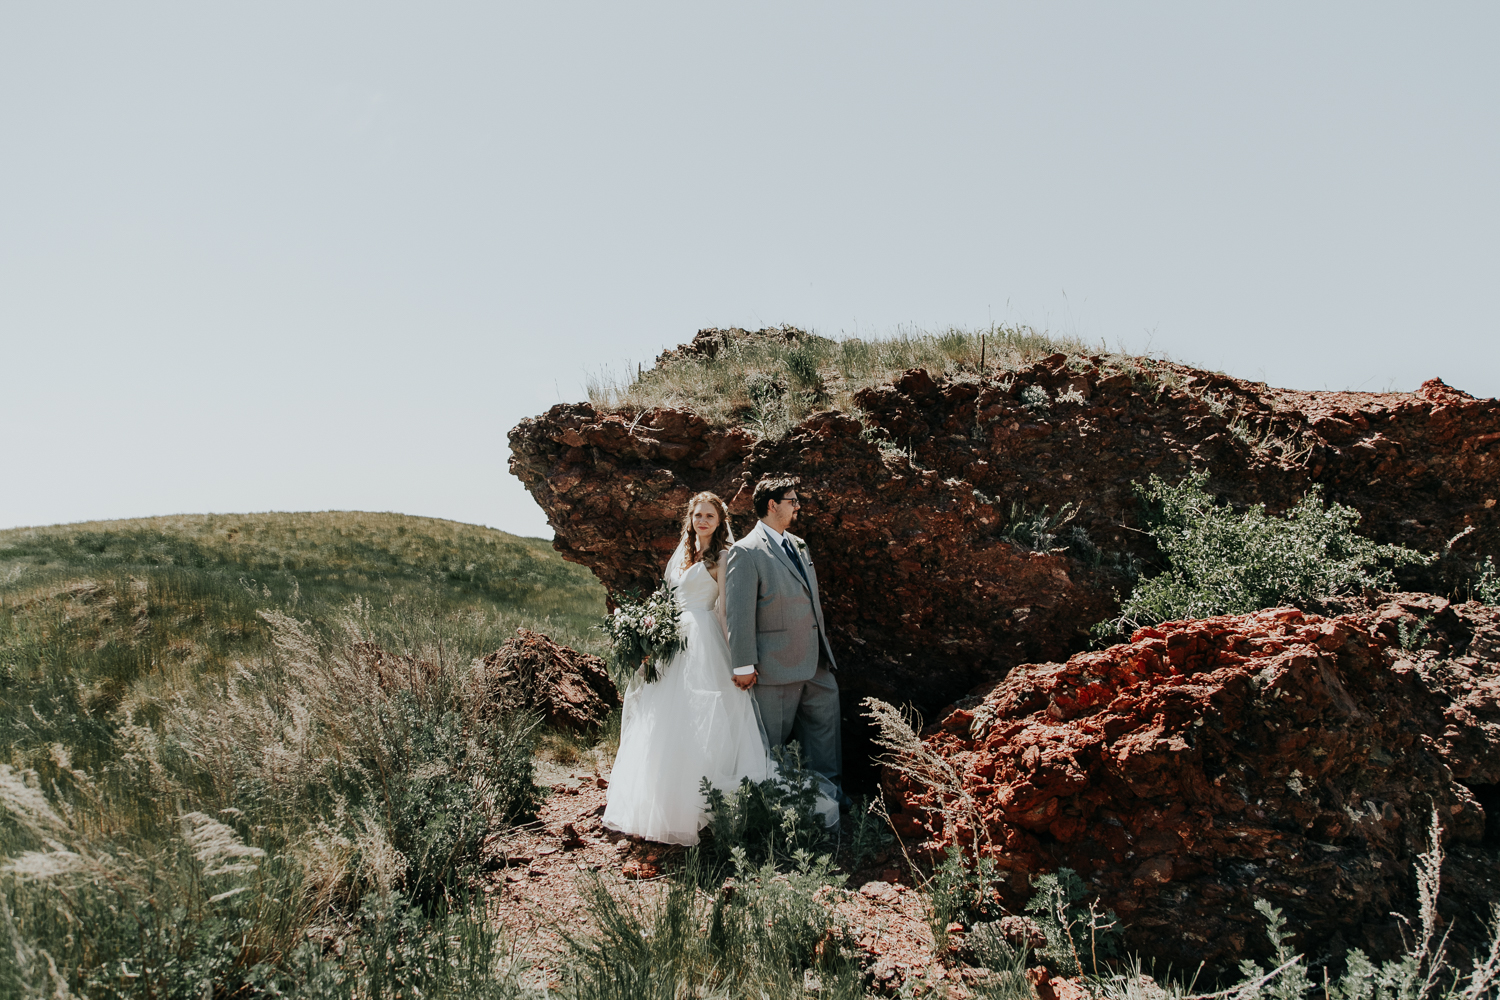 lethbridge-wedding-photographer-love-and-be-loved-photography-dan-tynnea-picture-image-photo-83.jpg